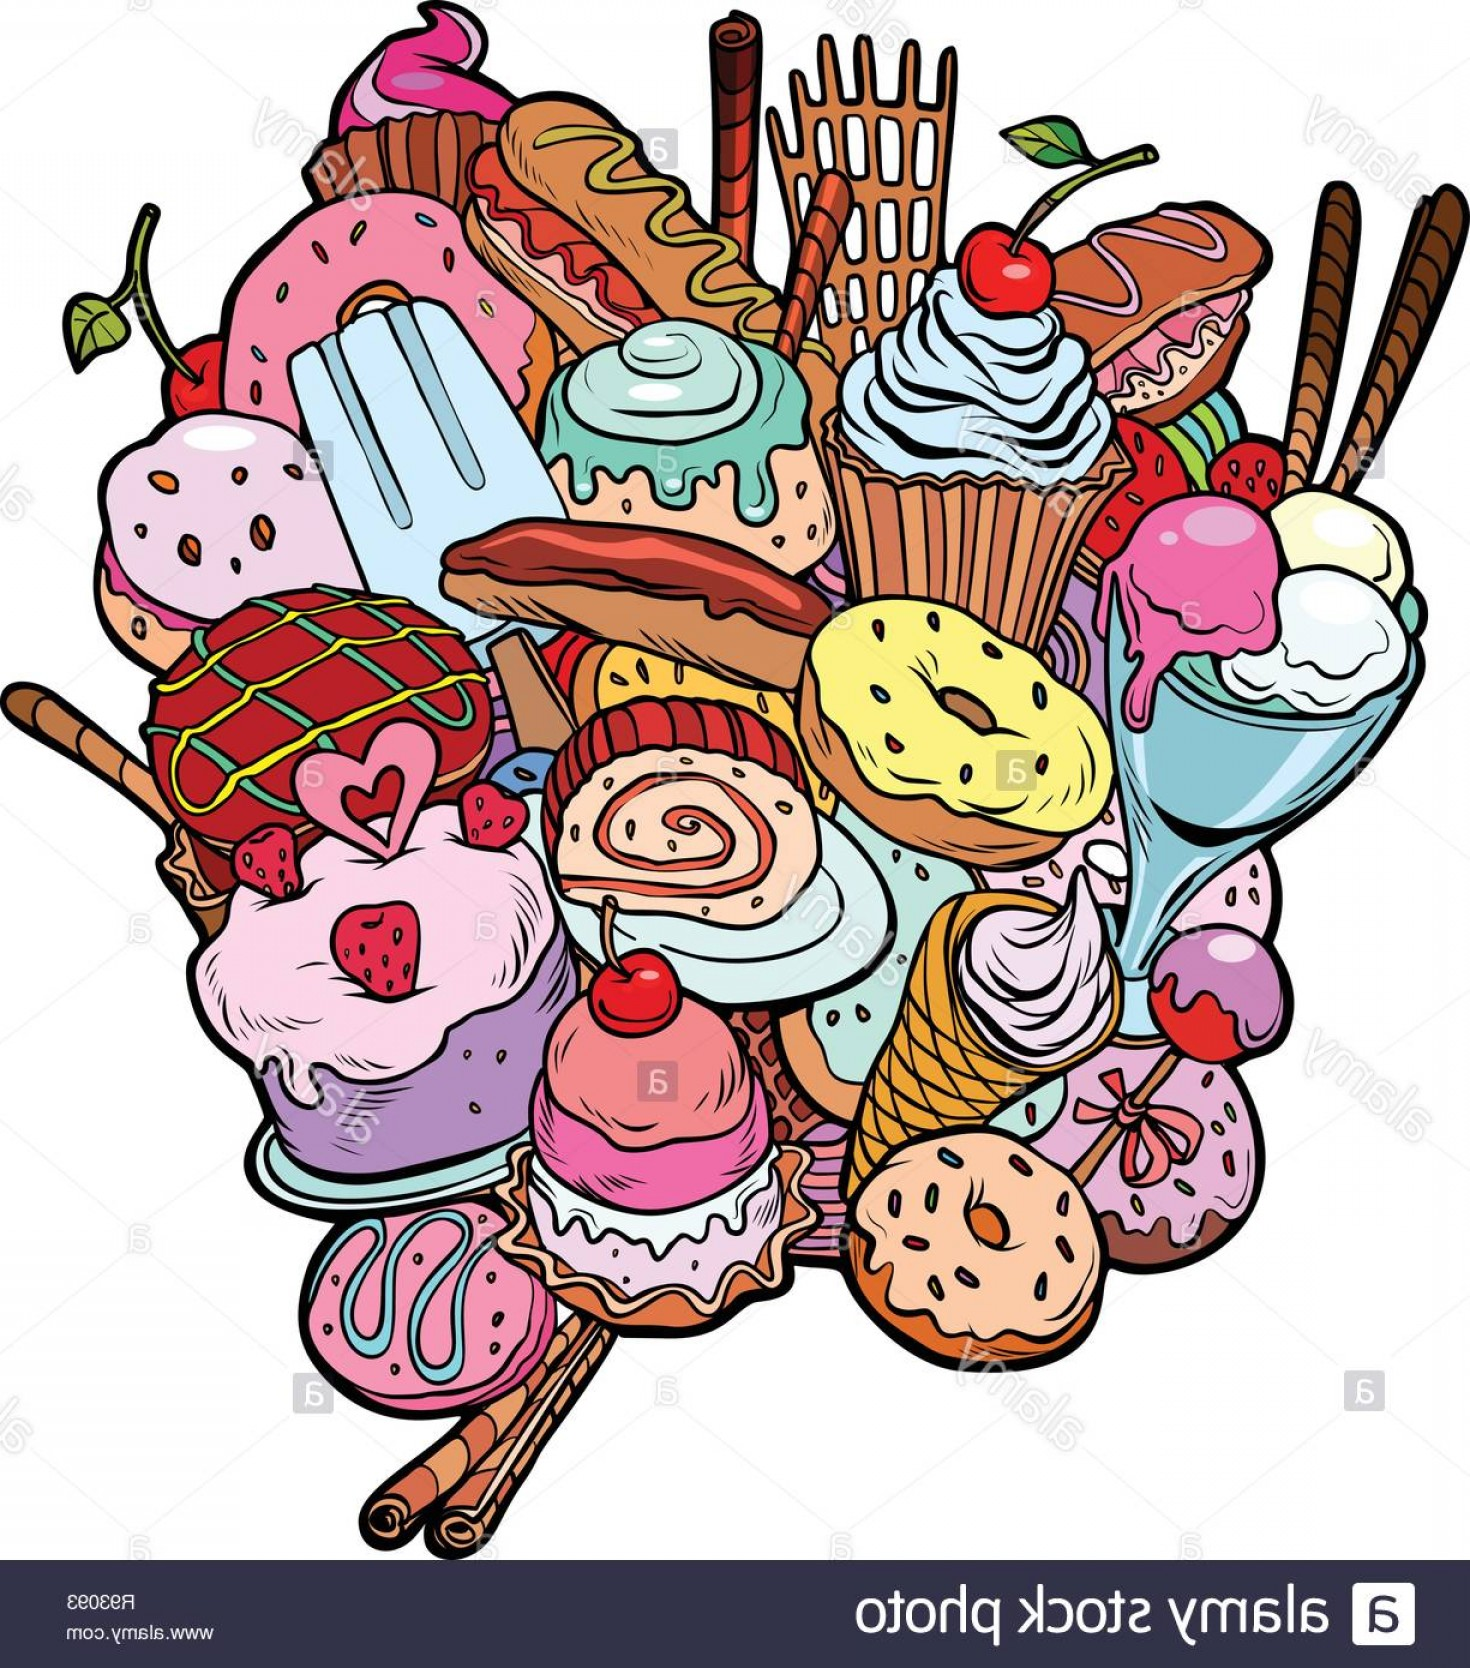 Food Vectors 50 S: Baking Sweets Delicious Food Birthday Isolate On White Background Pop Art Retro Vector Illustration Kitsch Vintage Image